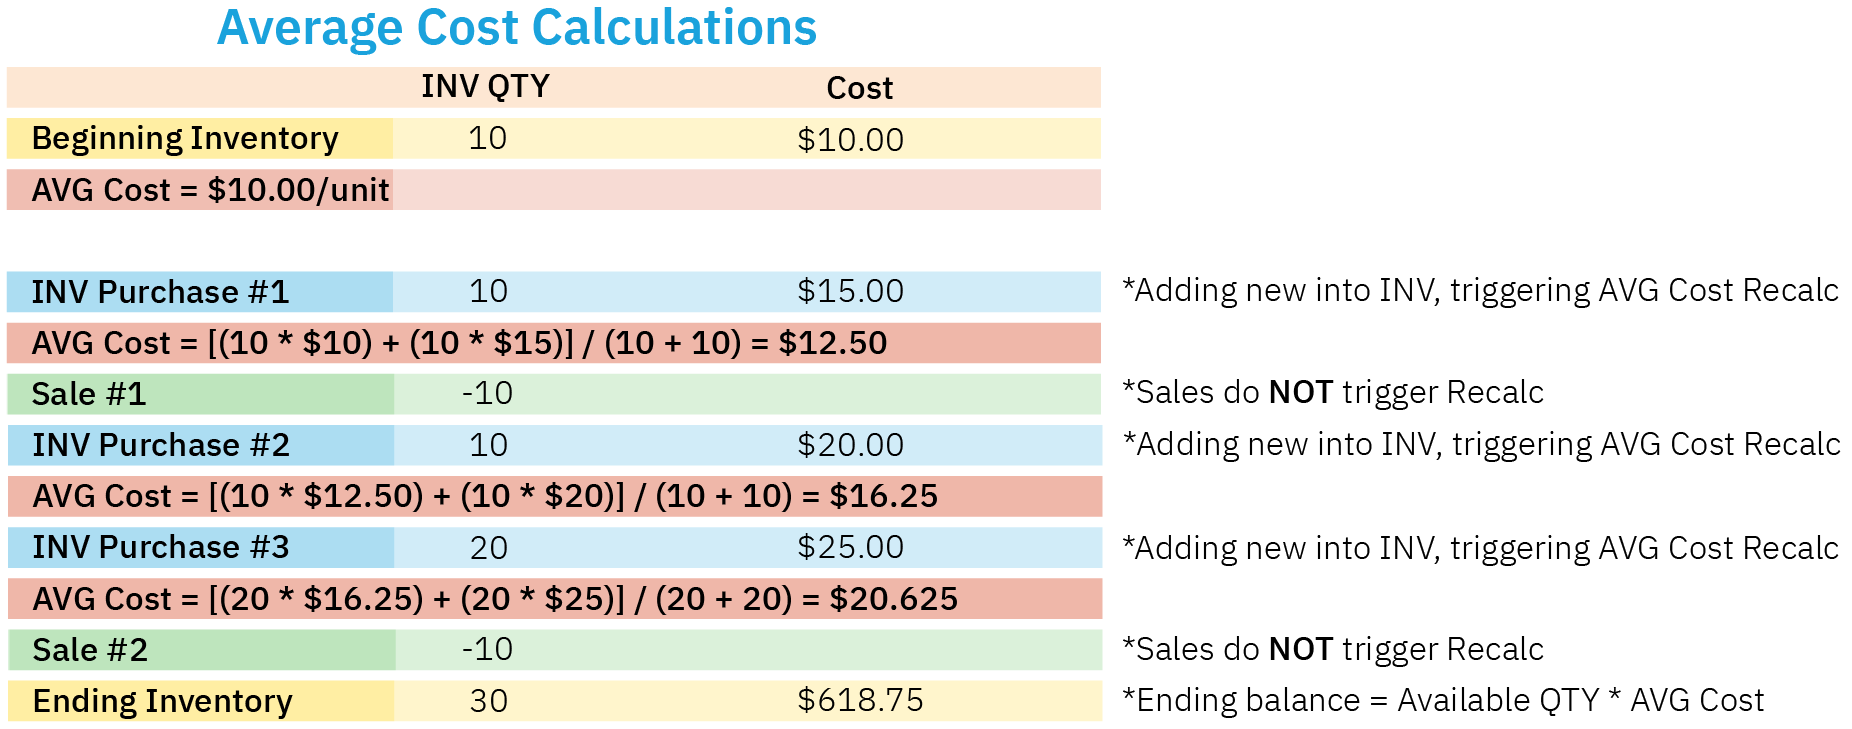 InventoryCosting-Graphs-05.png